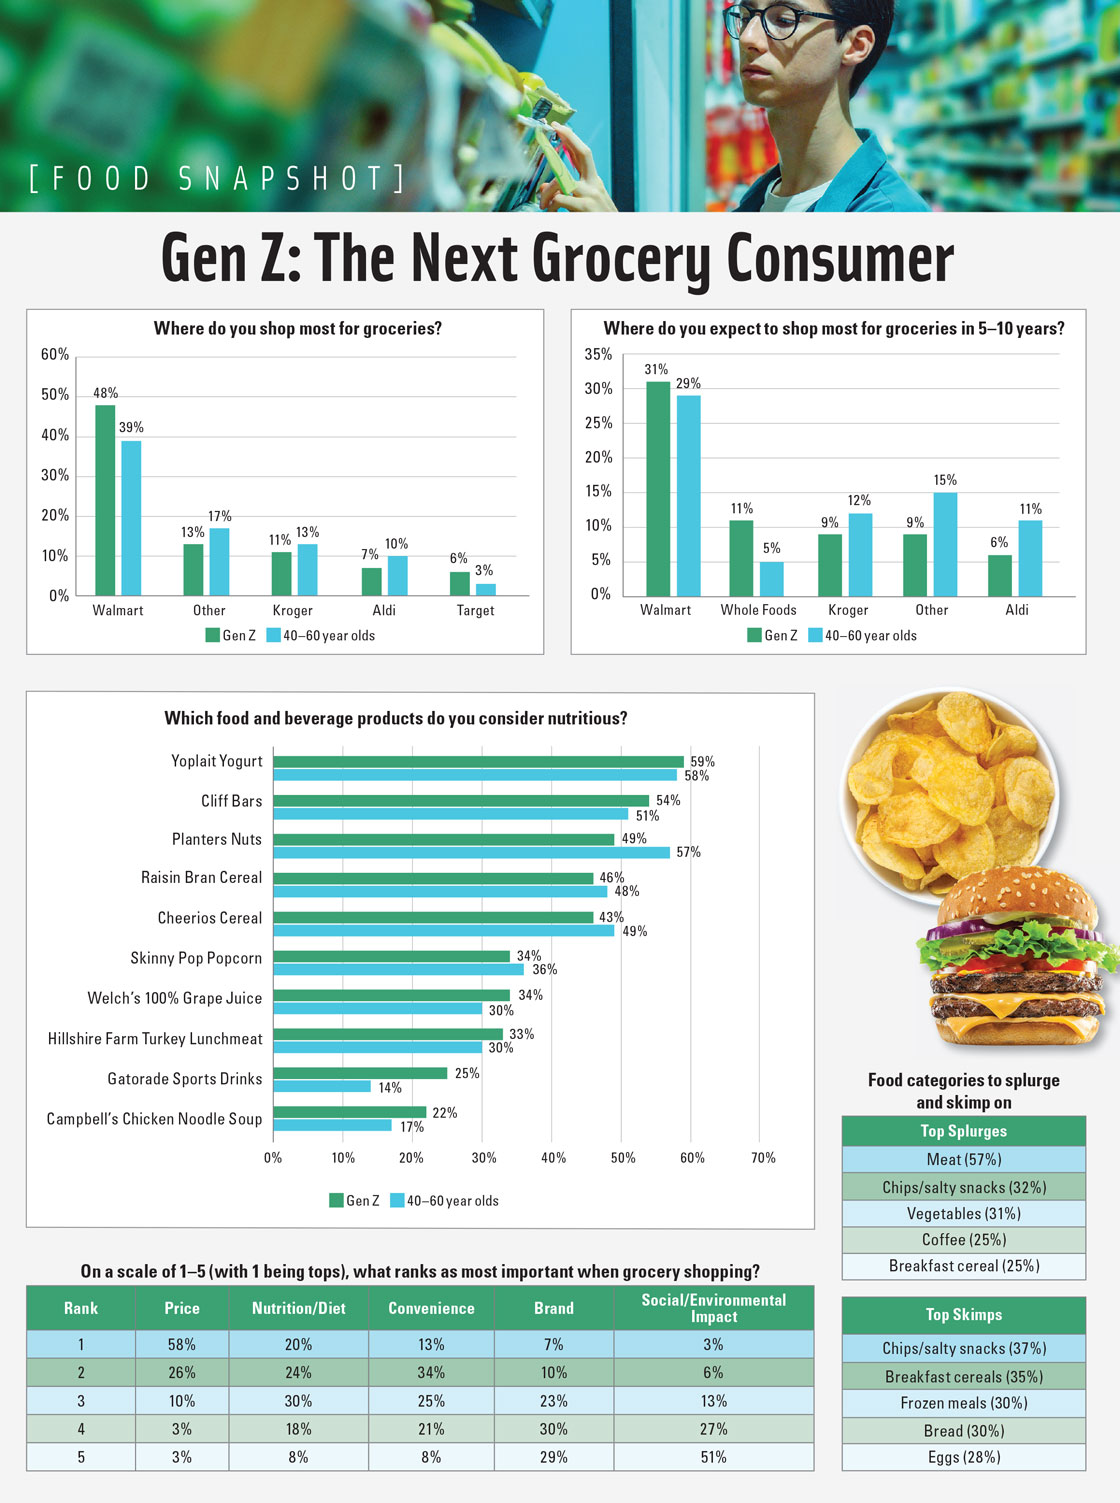 Gen Z: The Next Grocery Consumer. Source: Grocery Shopping With Gen Z, Field Agent, Spring 2019.